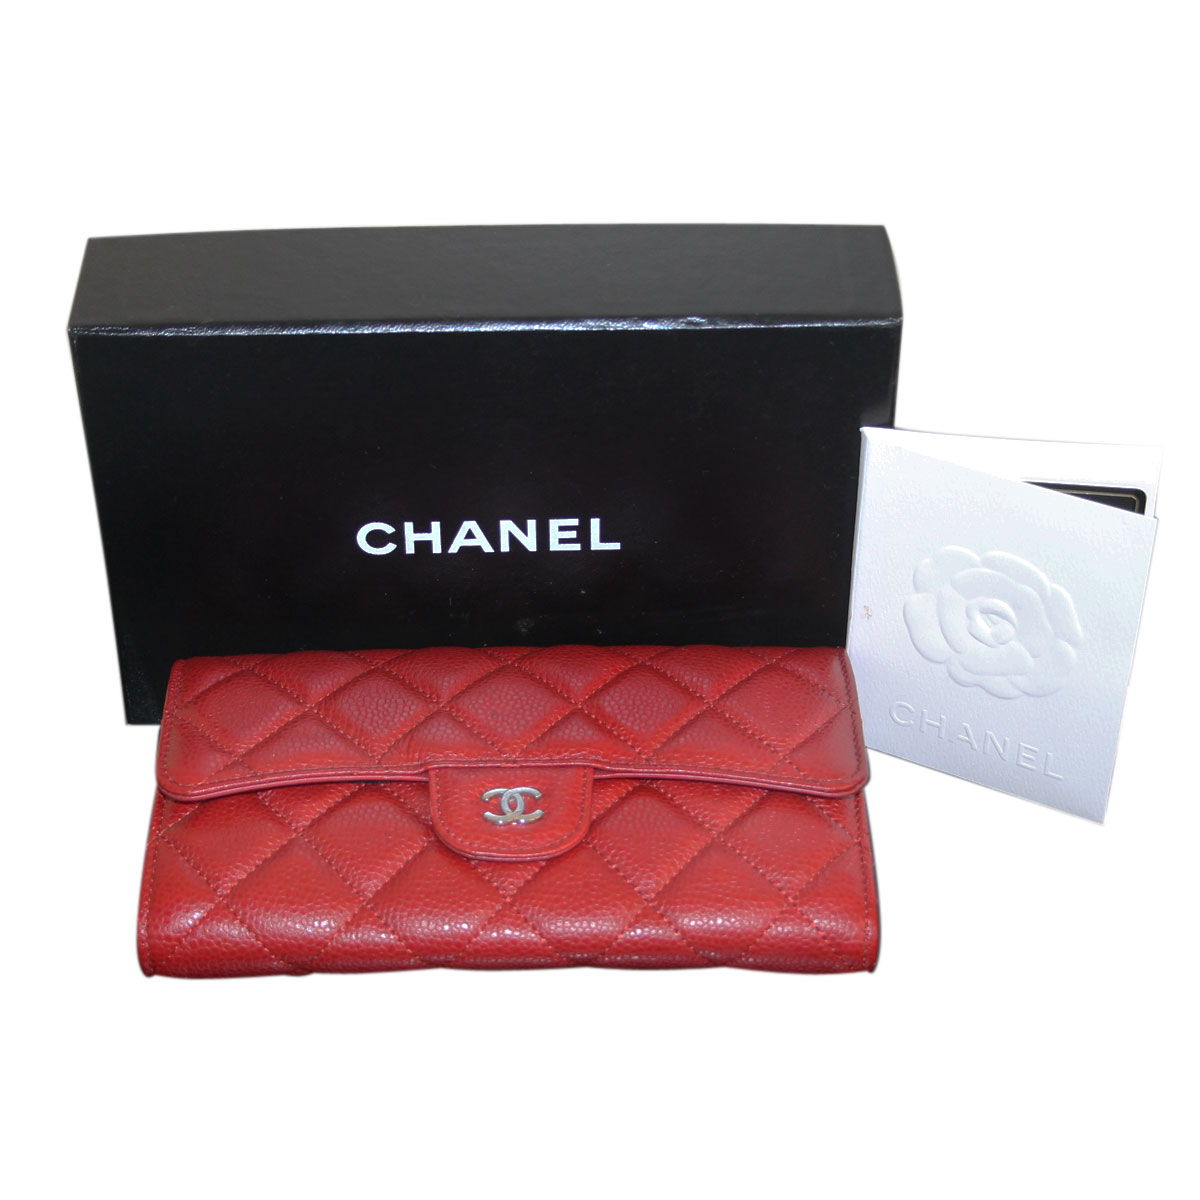 Chanel Red Caviar Box and Papers